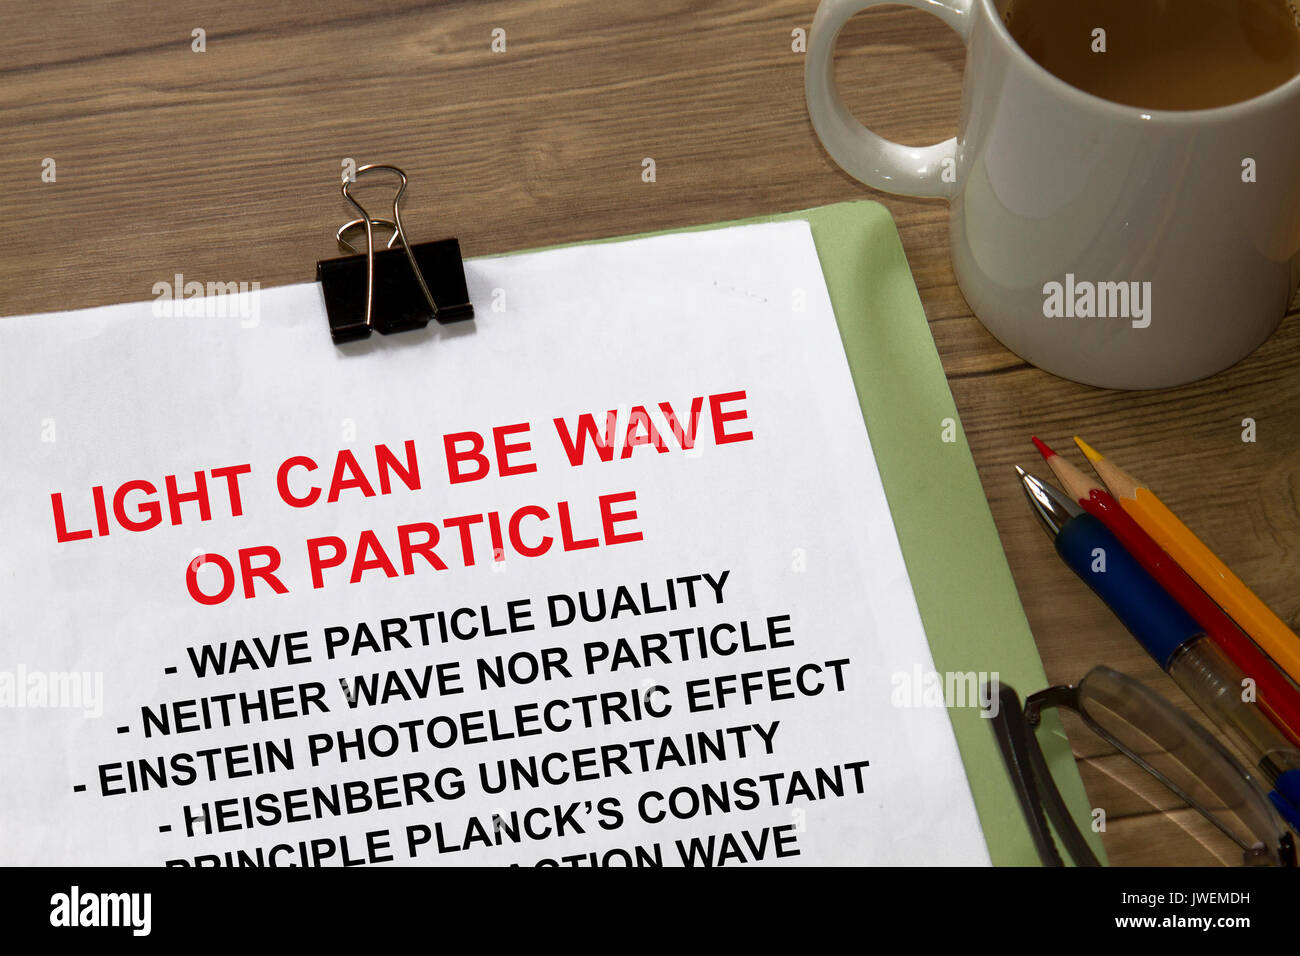 Wave Particle Duality Stock Photos & Wave Particle Duality Stock